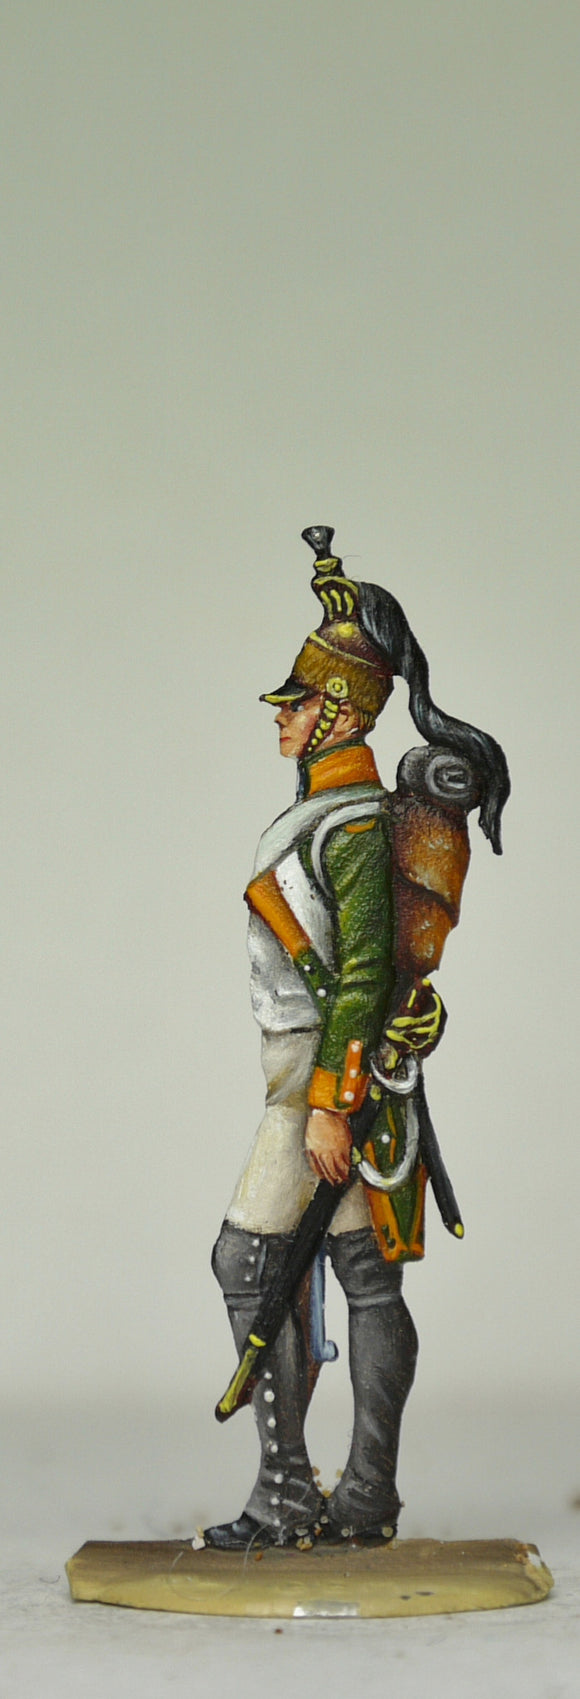 French foot dragoon - Glorious Empires-Historical Miniatures